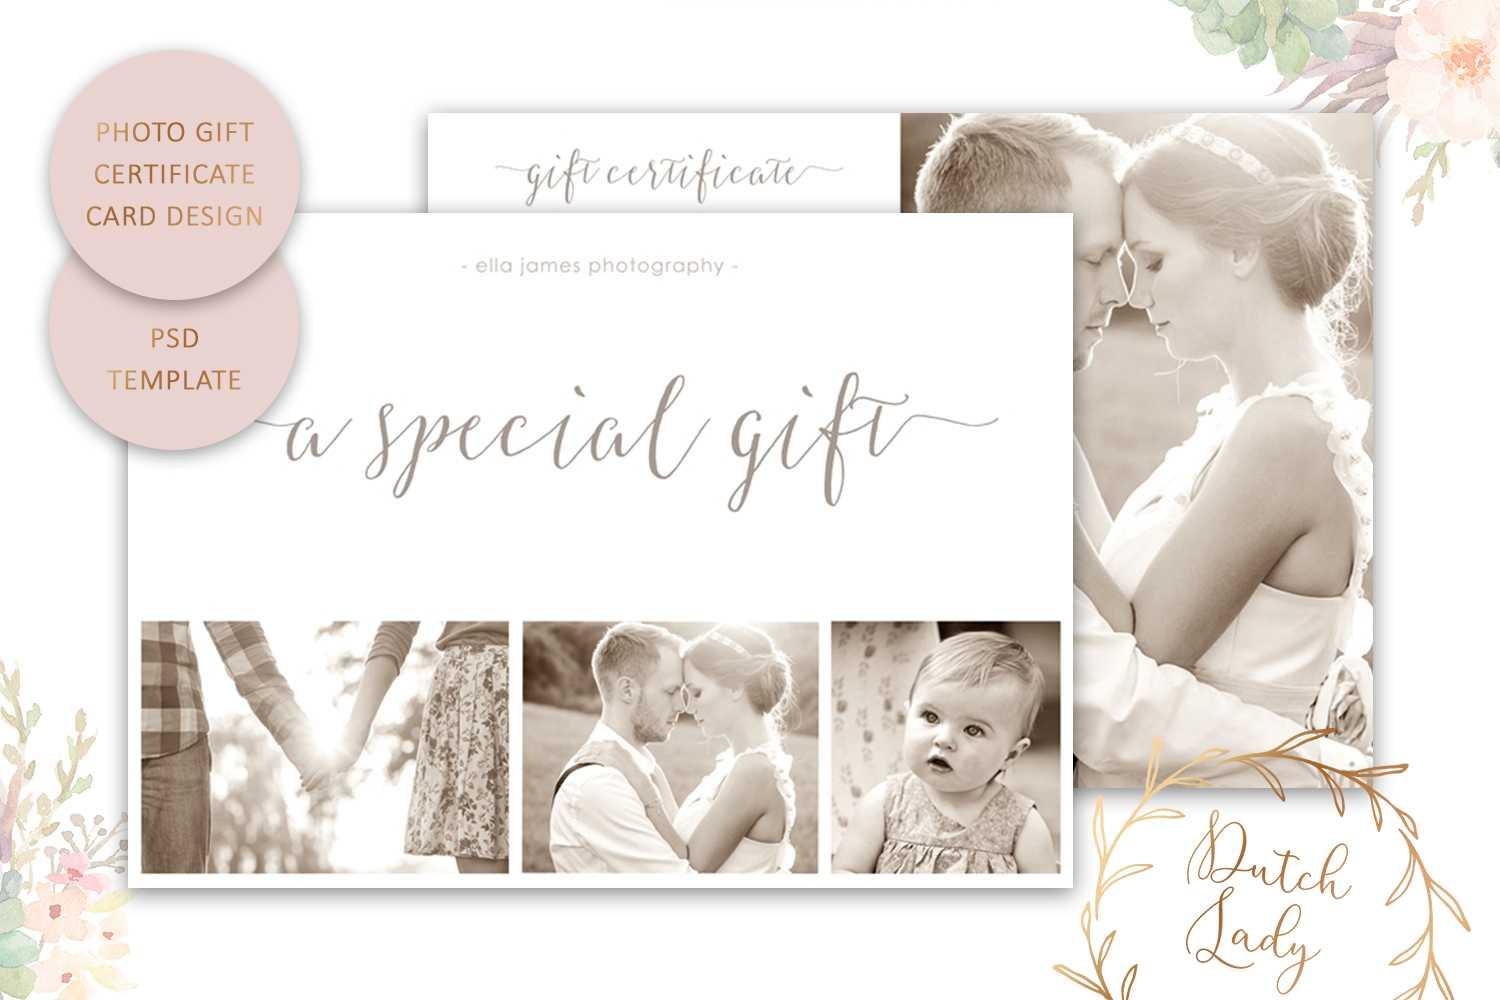 Psd Photography Gift Certificate Card Template 8 - Vsual Pertaining To Free Photography Gift Certificate Template